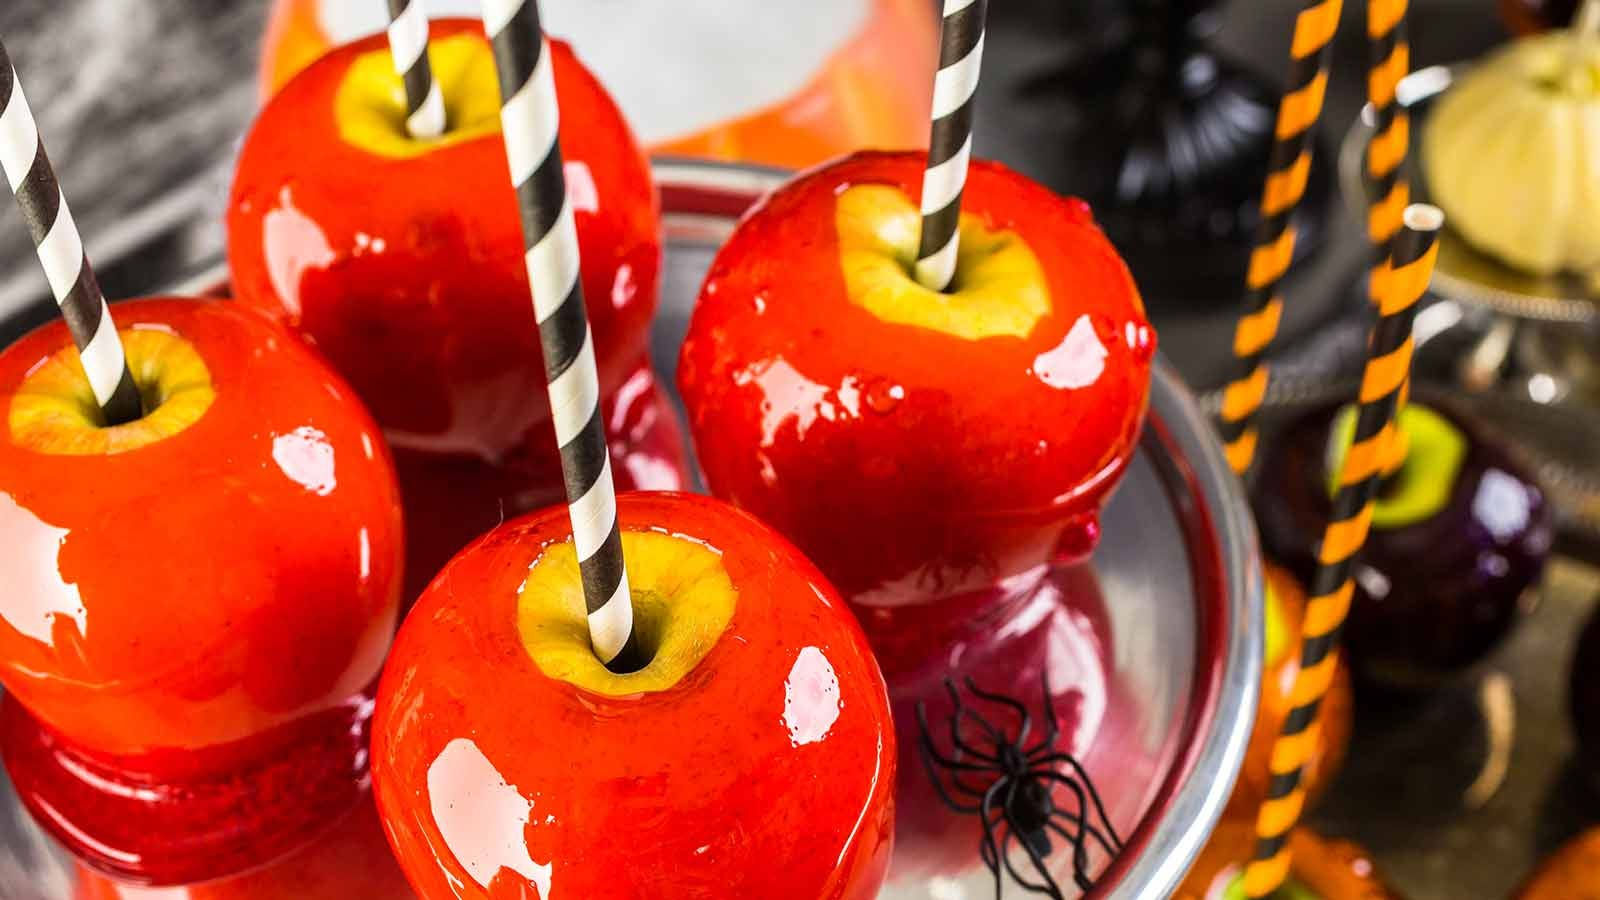 shiny red candy apples with black and white striped sticks resting on a silver platter